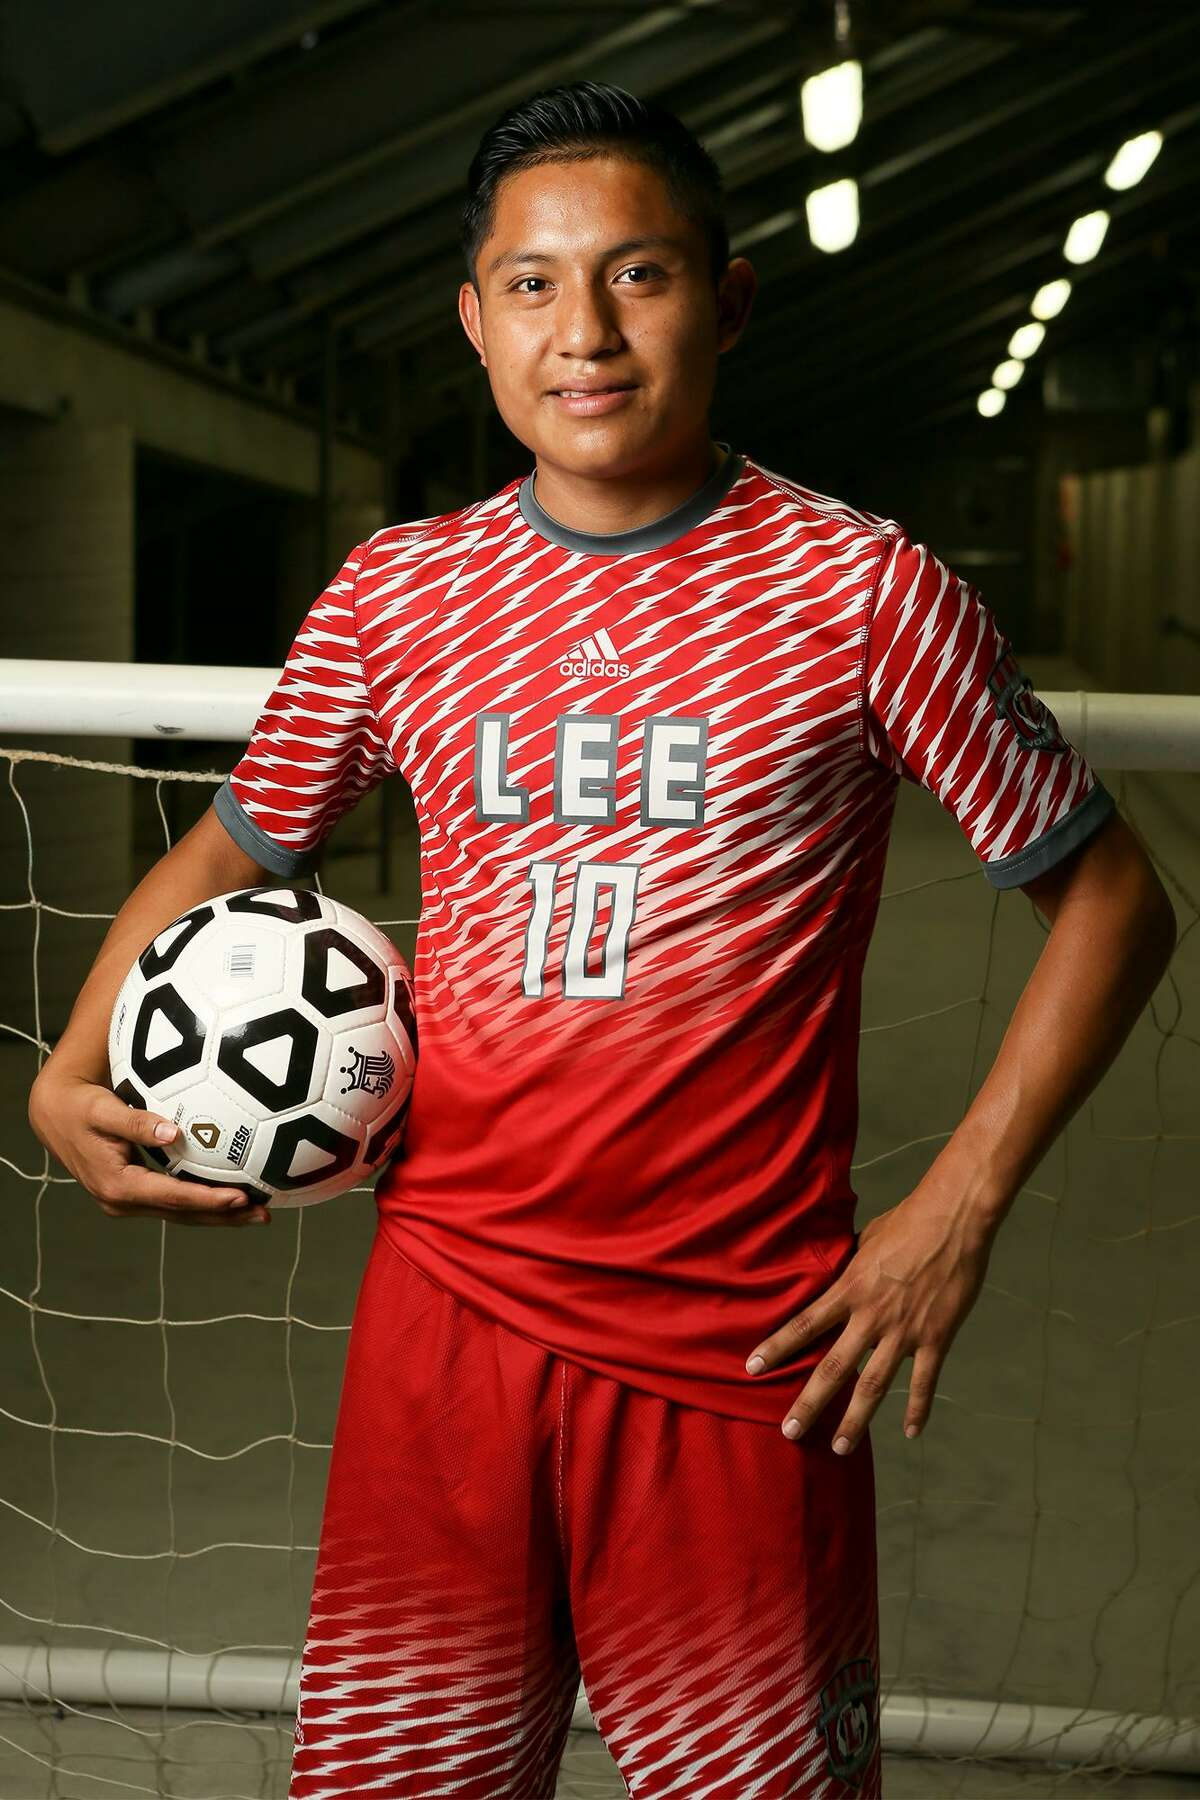 Wilmar Aguilar, LEE soccer, Sr. The forward earned local, state and national accolades after recording 25 goals and 24 assists for LEE last season. The Express-News Co-Player of the Year for 2019 also made the Allstate All-America team and the Texas Association of Soccer Coaches 6A all-state team.